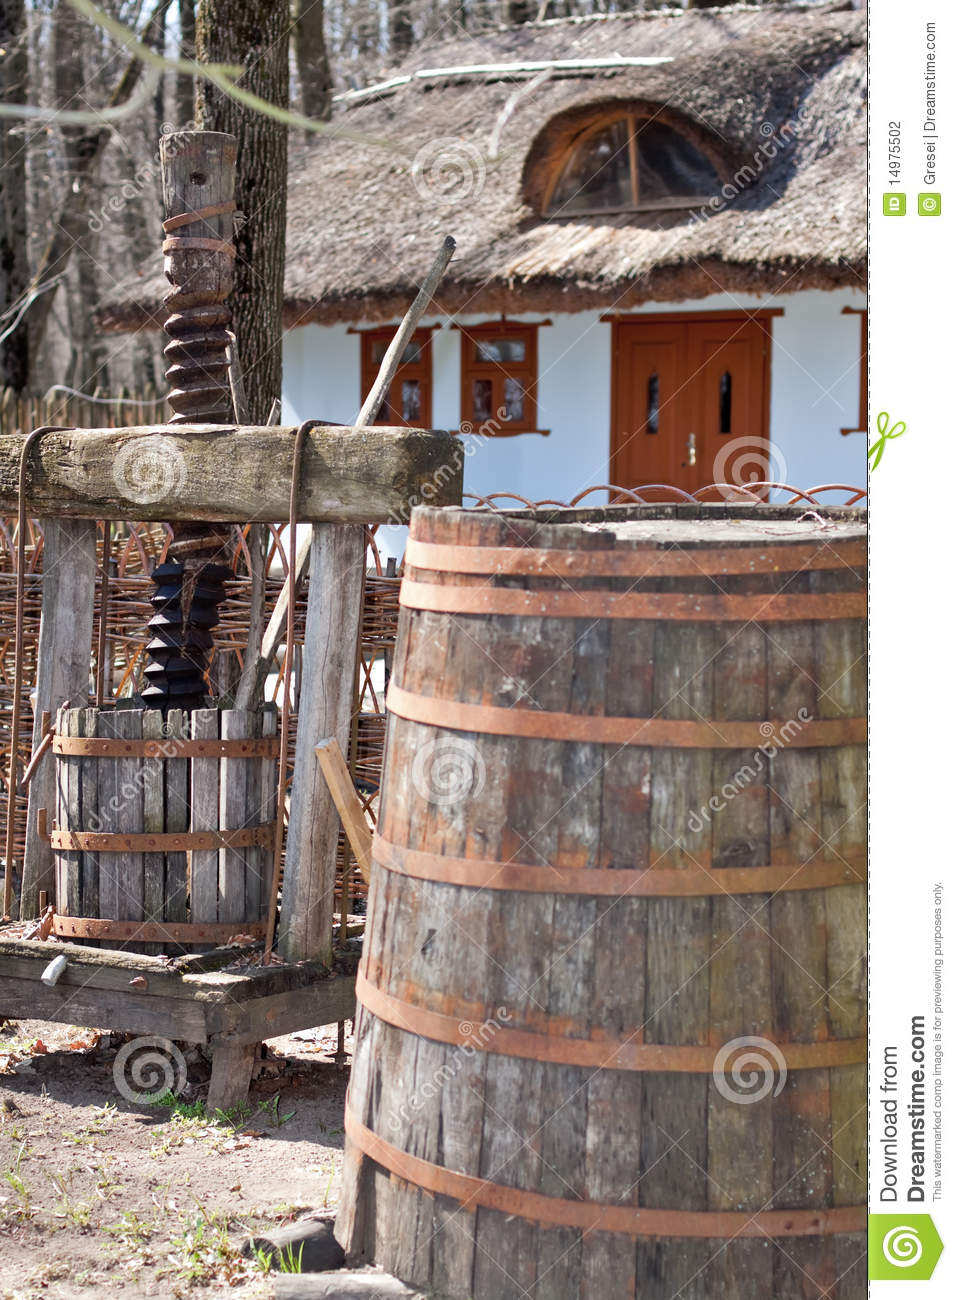 Wine press and retro home stock photography image 14975502 for Home wine press